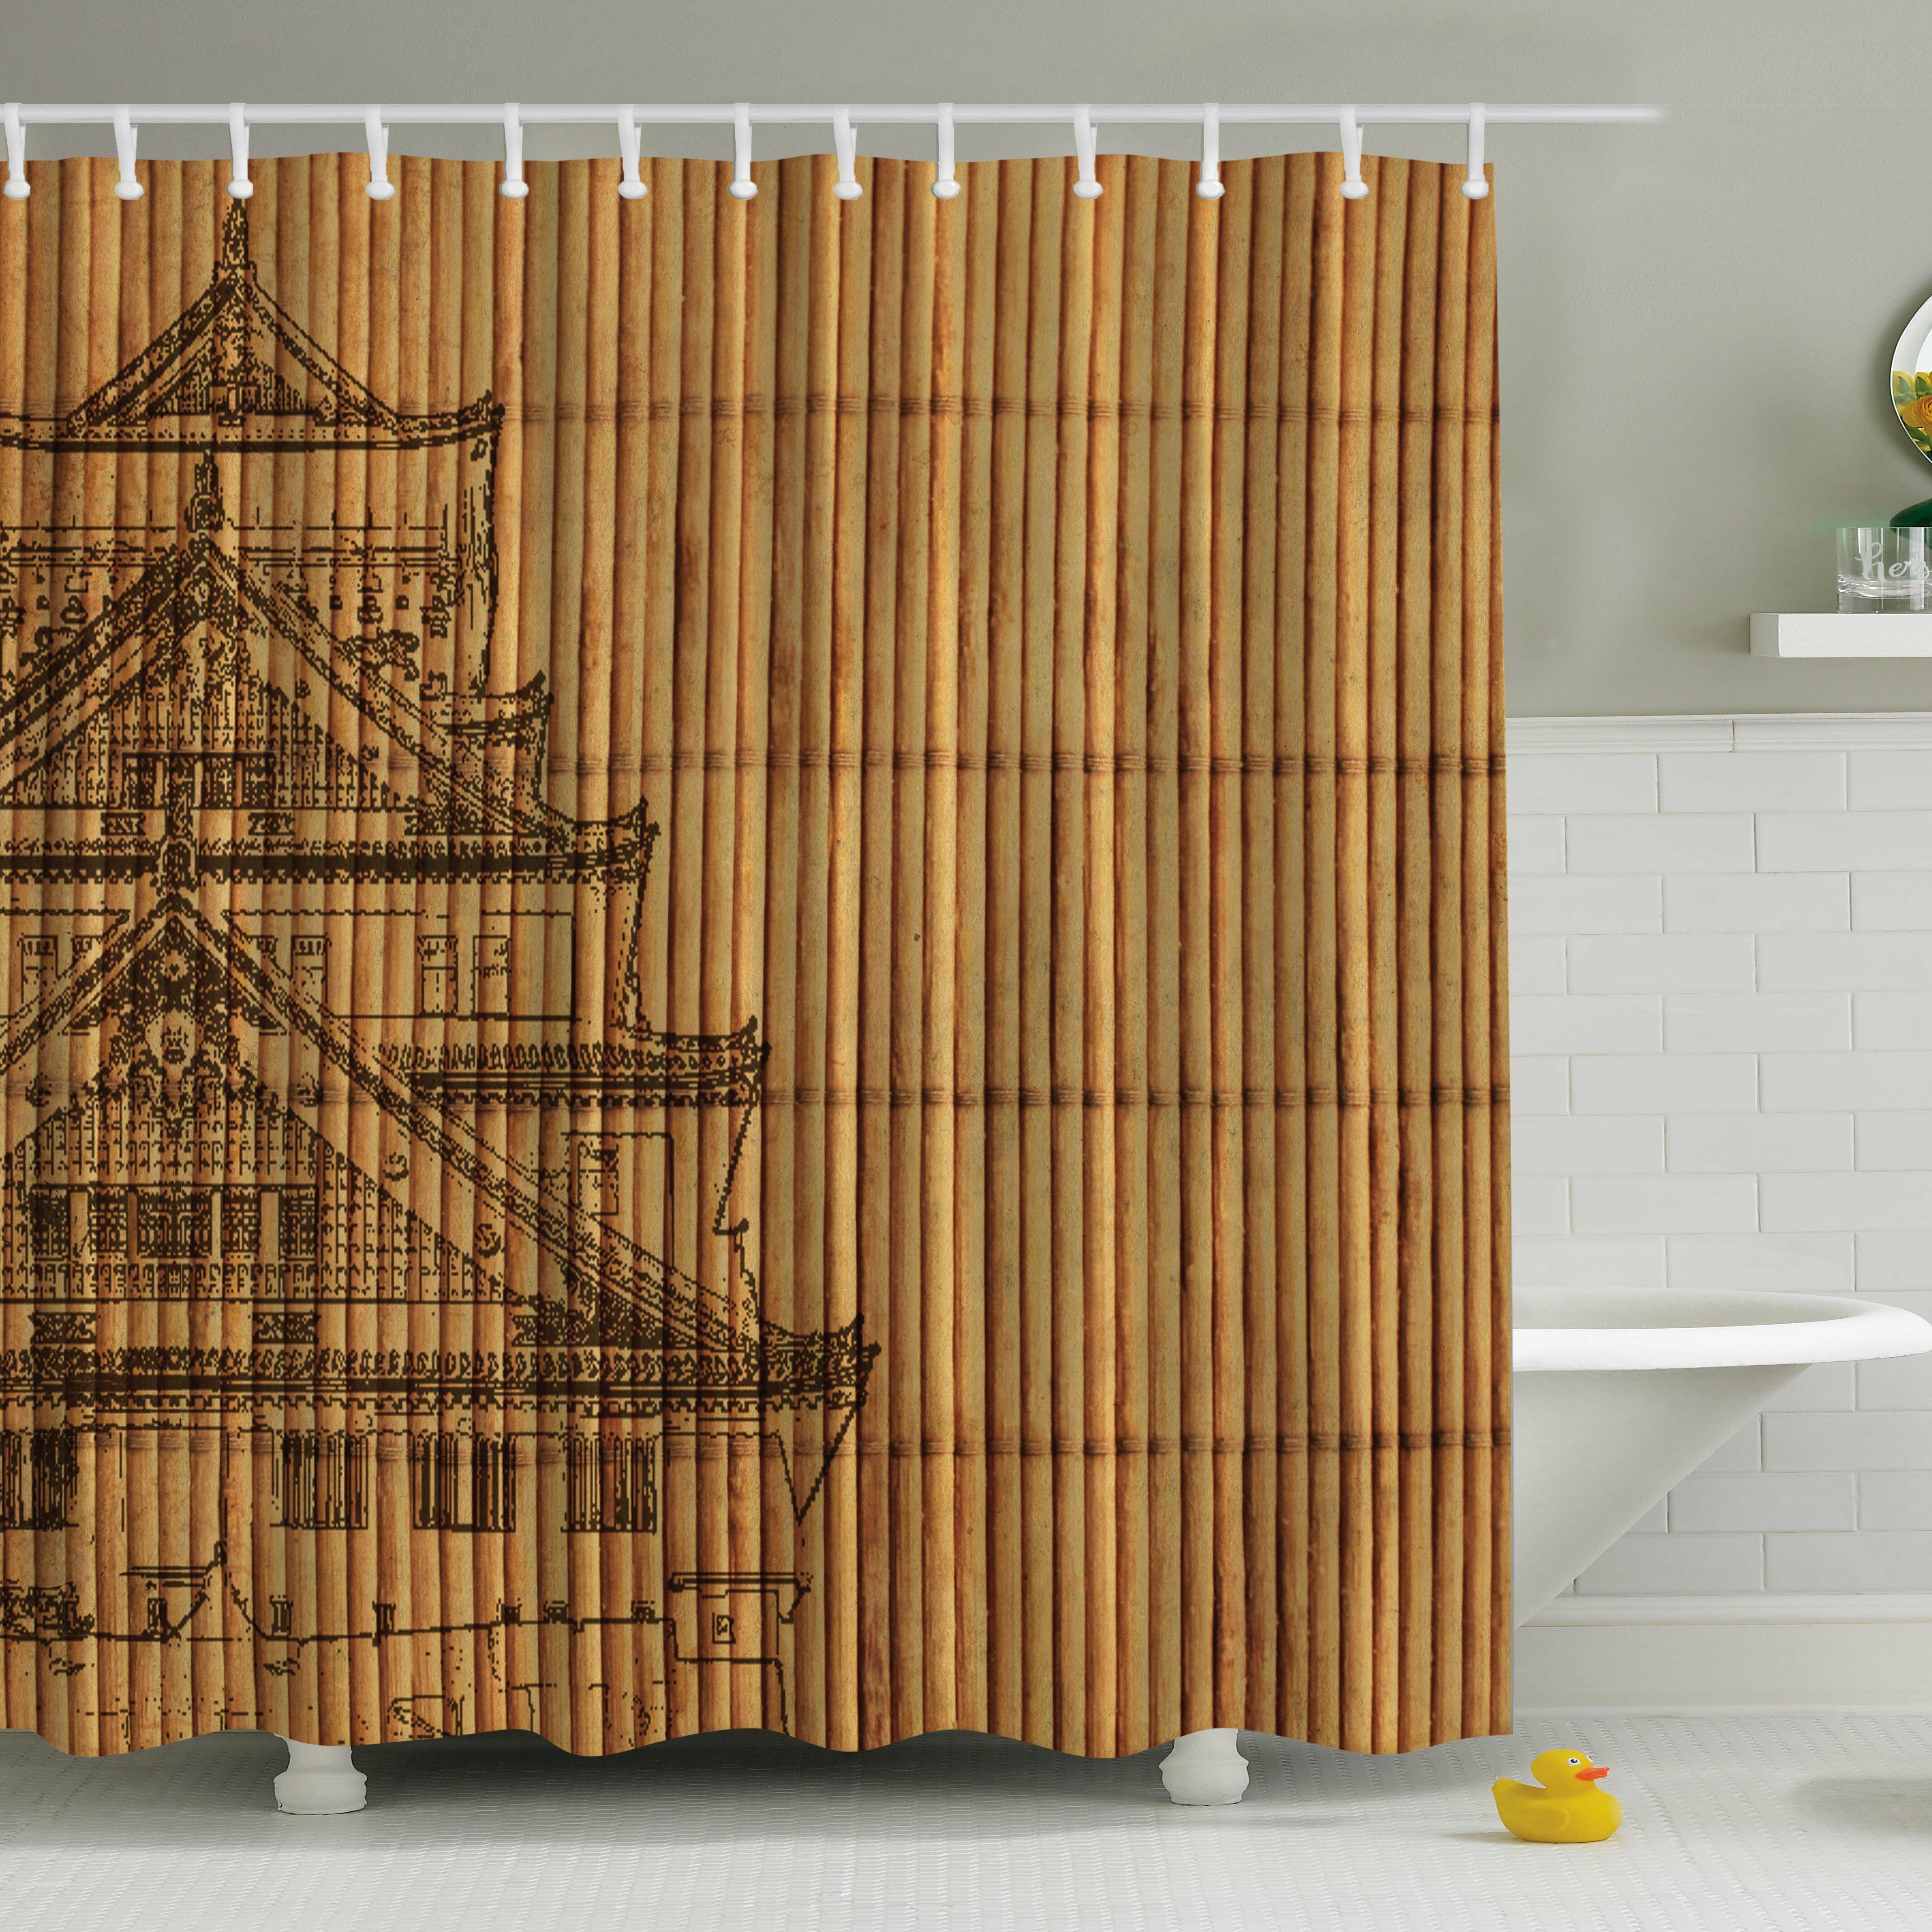 Ambesonne Japanese Reed Print Shower Curtain & Reviews | Wayfair